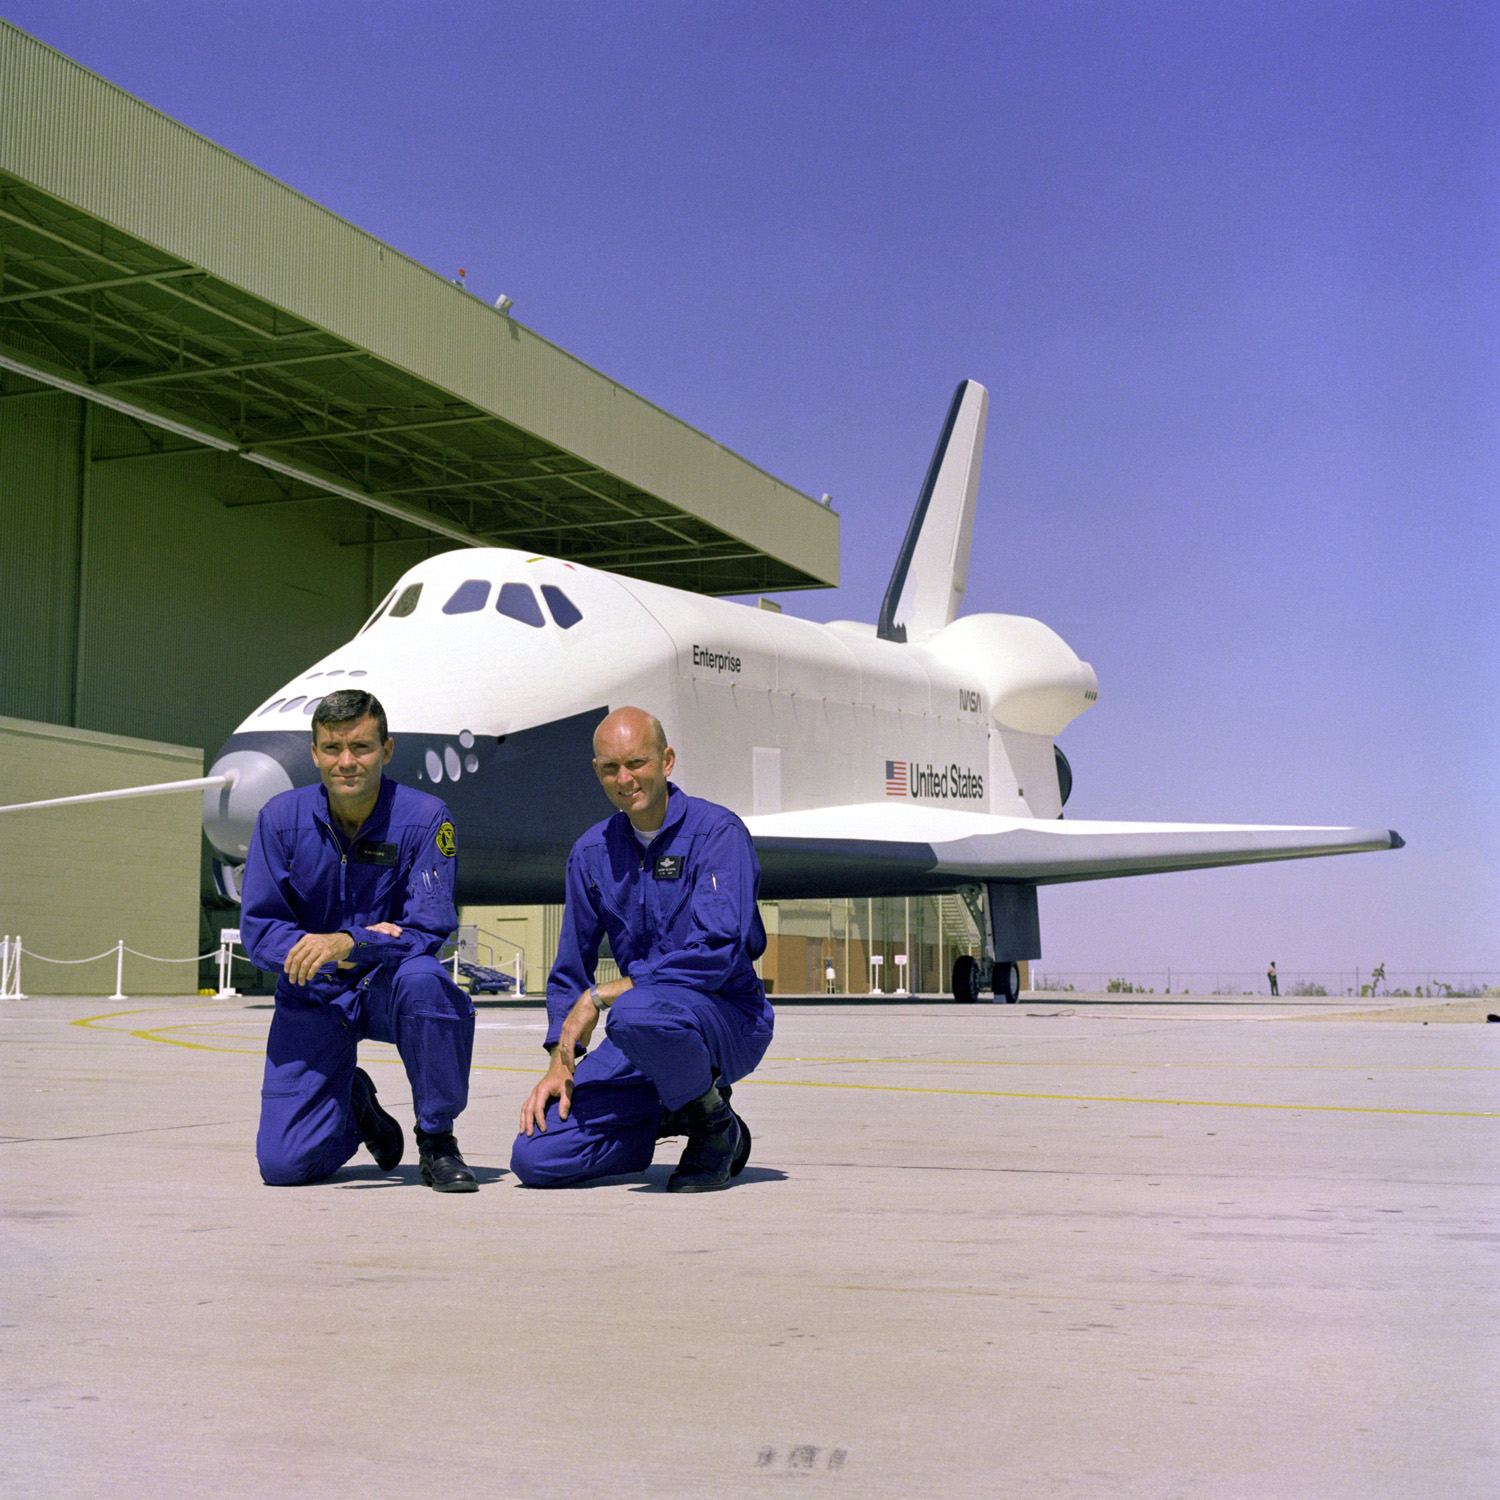 Space Shuttle Enterprise: The Test Pilots